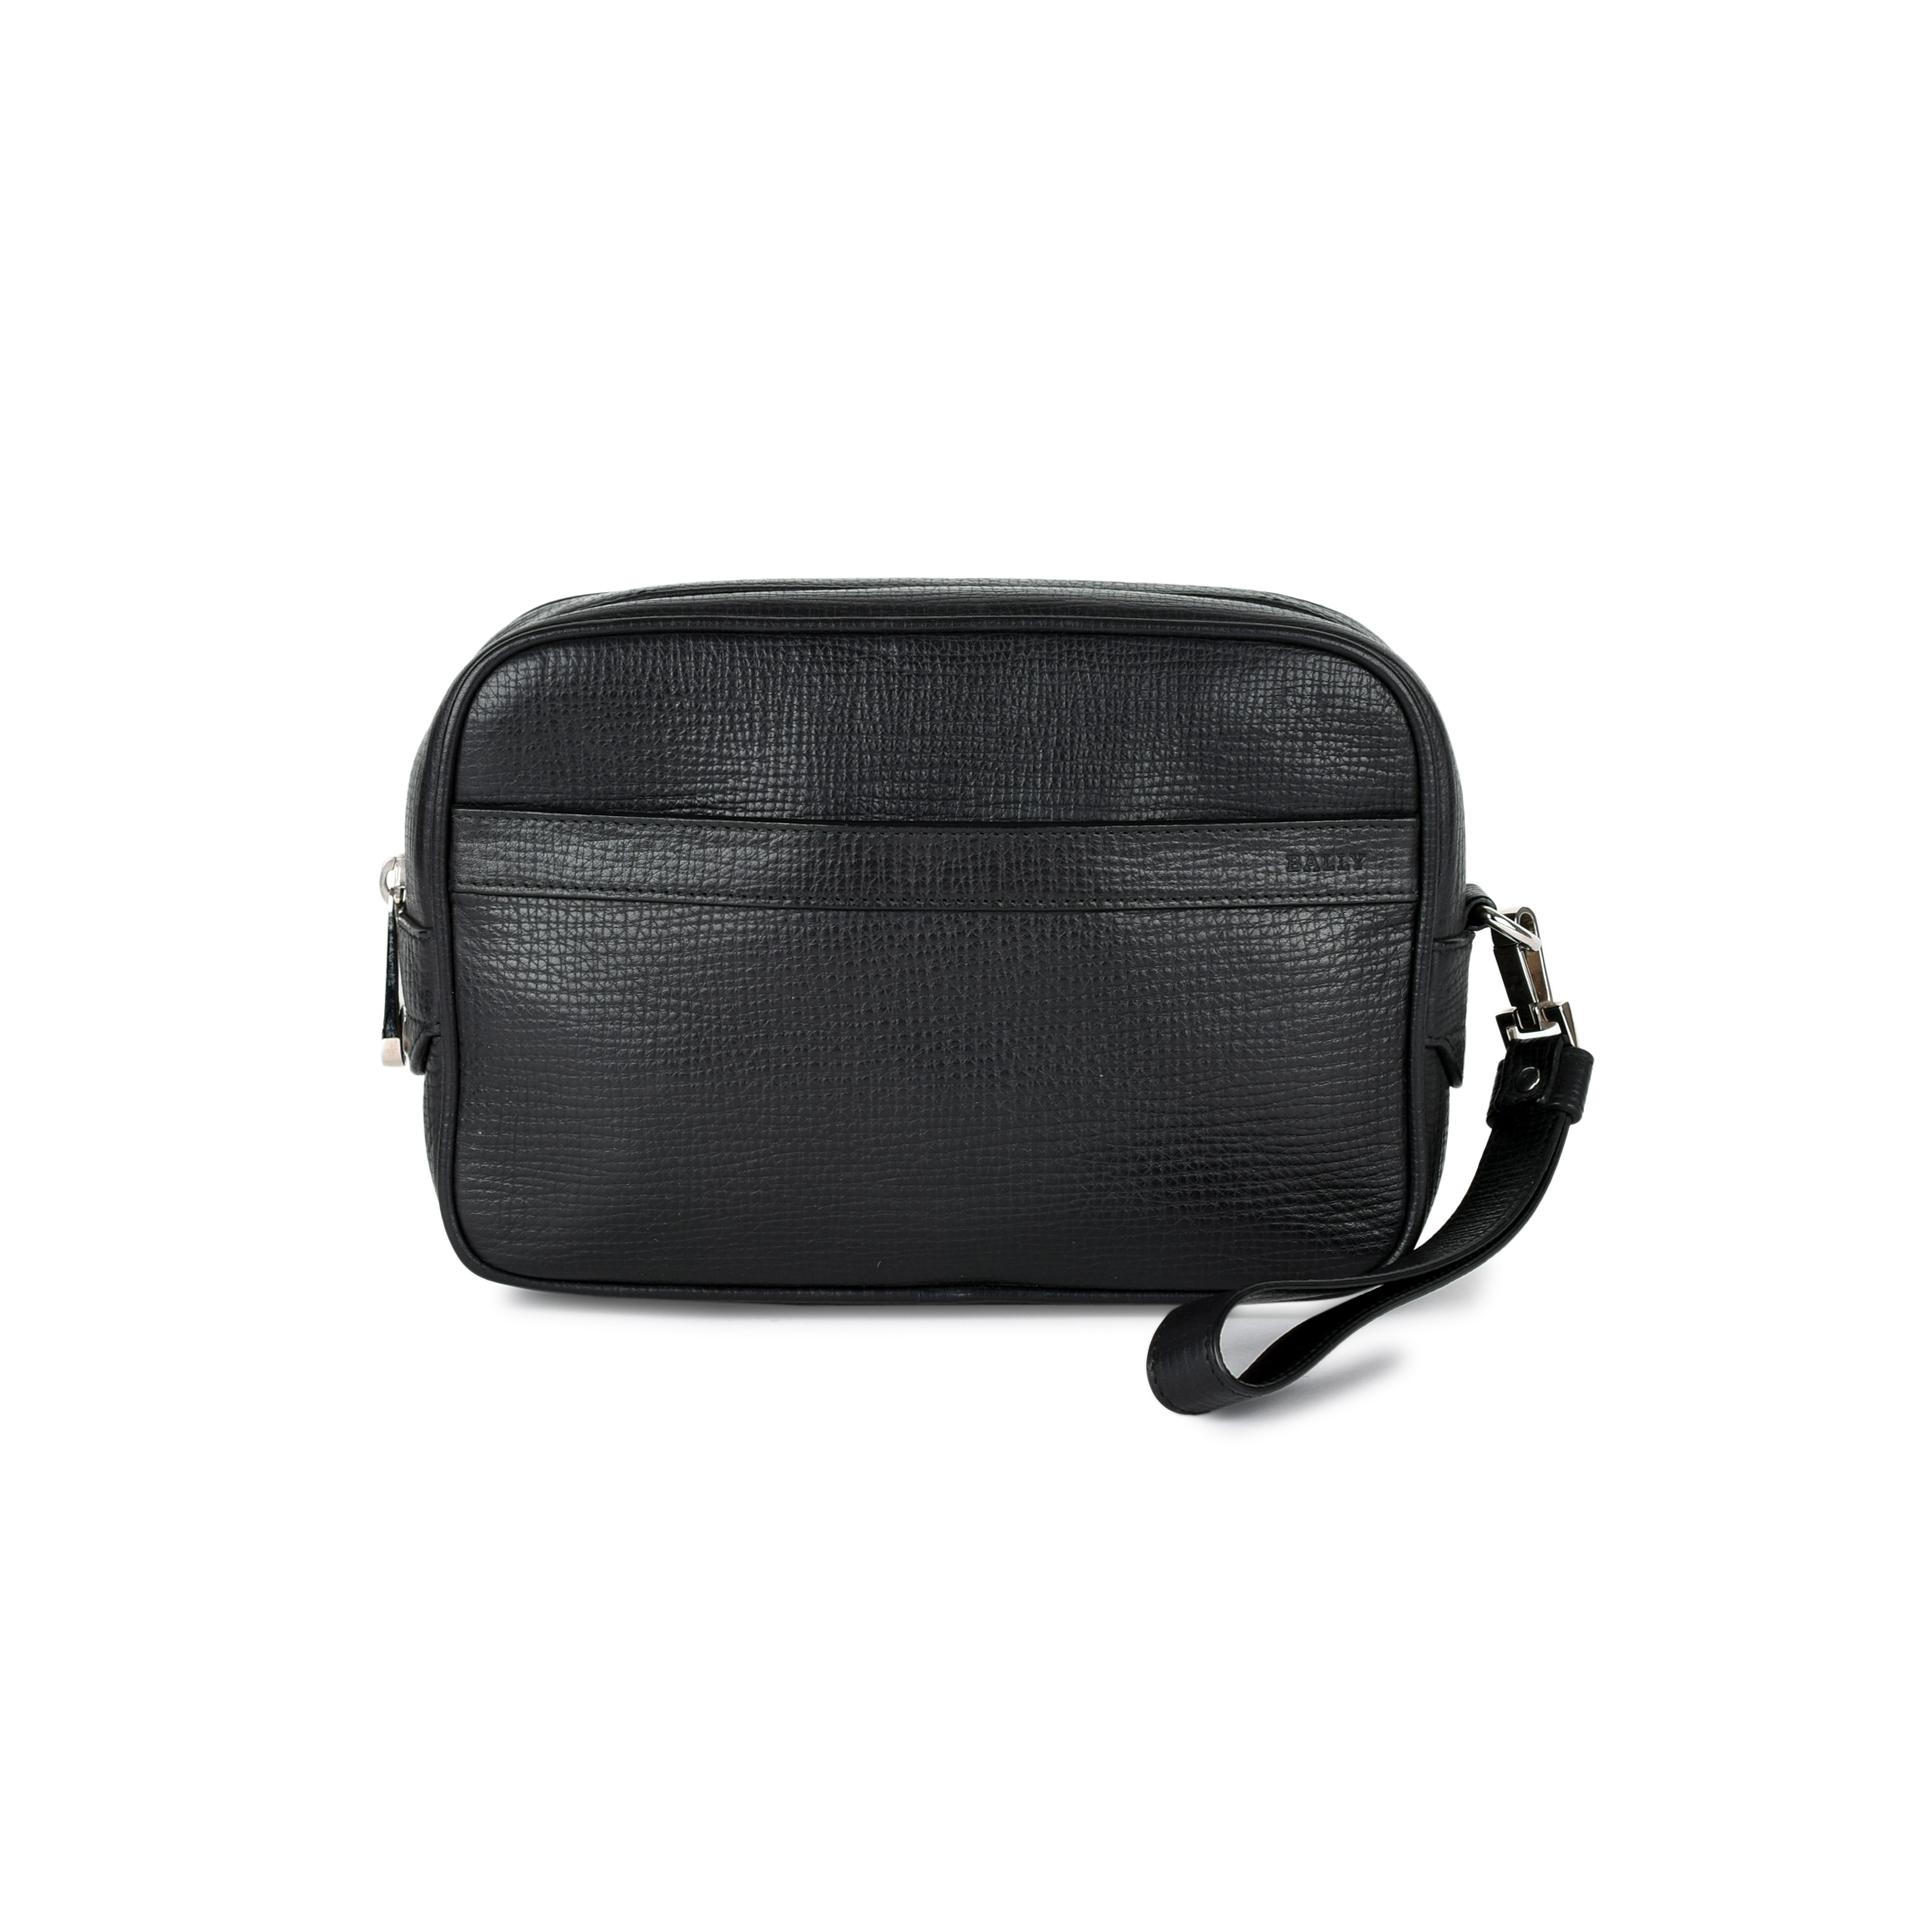 e7272ed4a4 Authentic Second Hand Bally Travel Pouch (PSS-430-00025) - THE FIFTH  COLLECTION